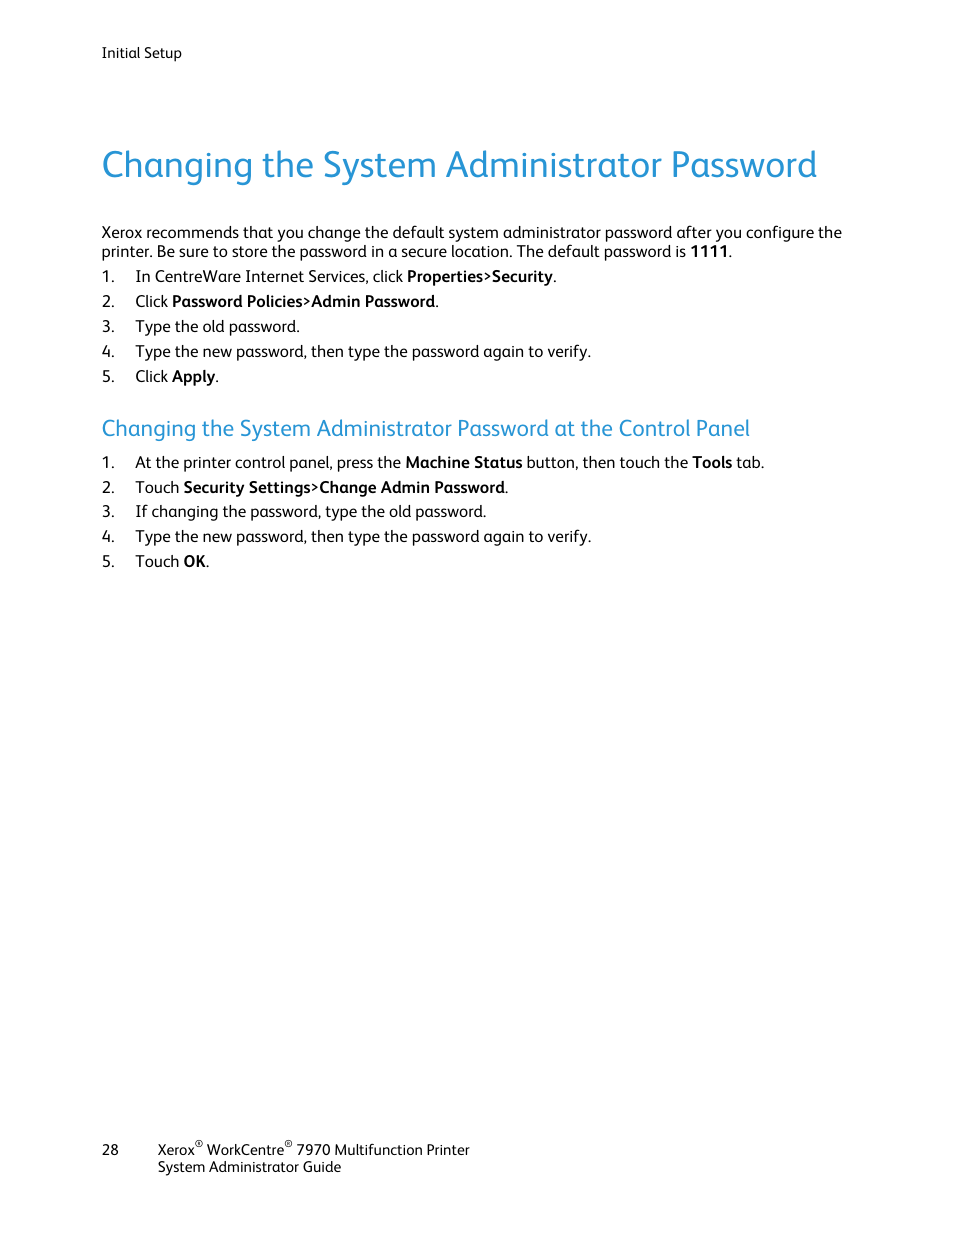 Changing the system administrator password | Xerox WorkCentre 7970